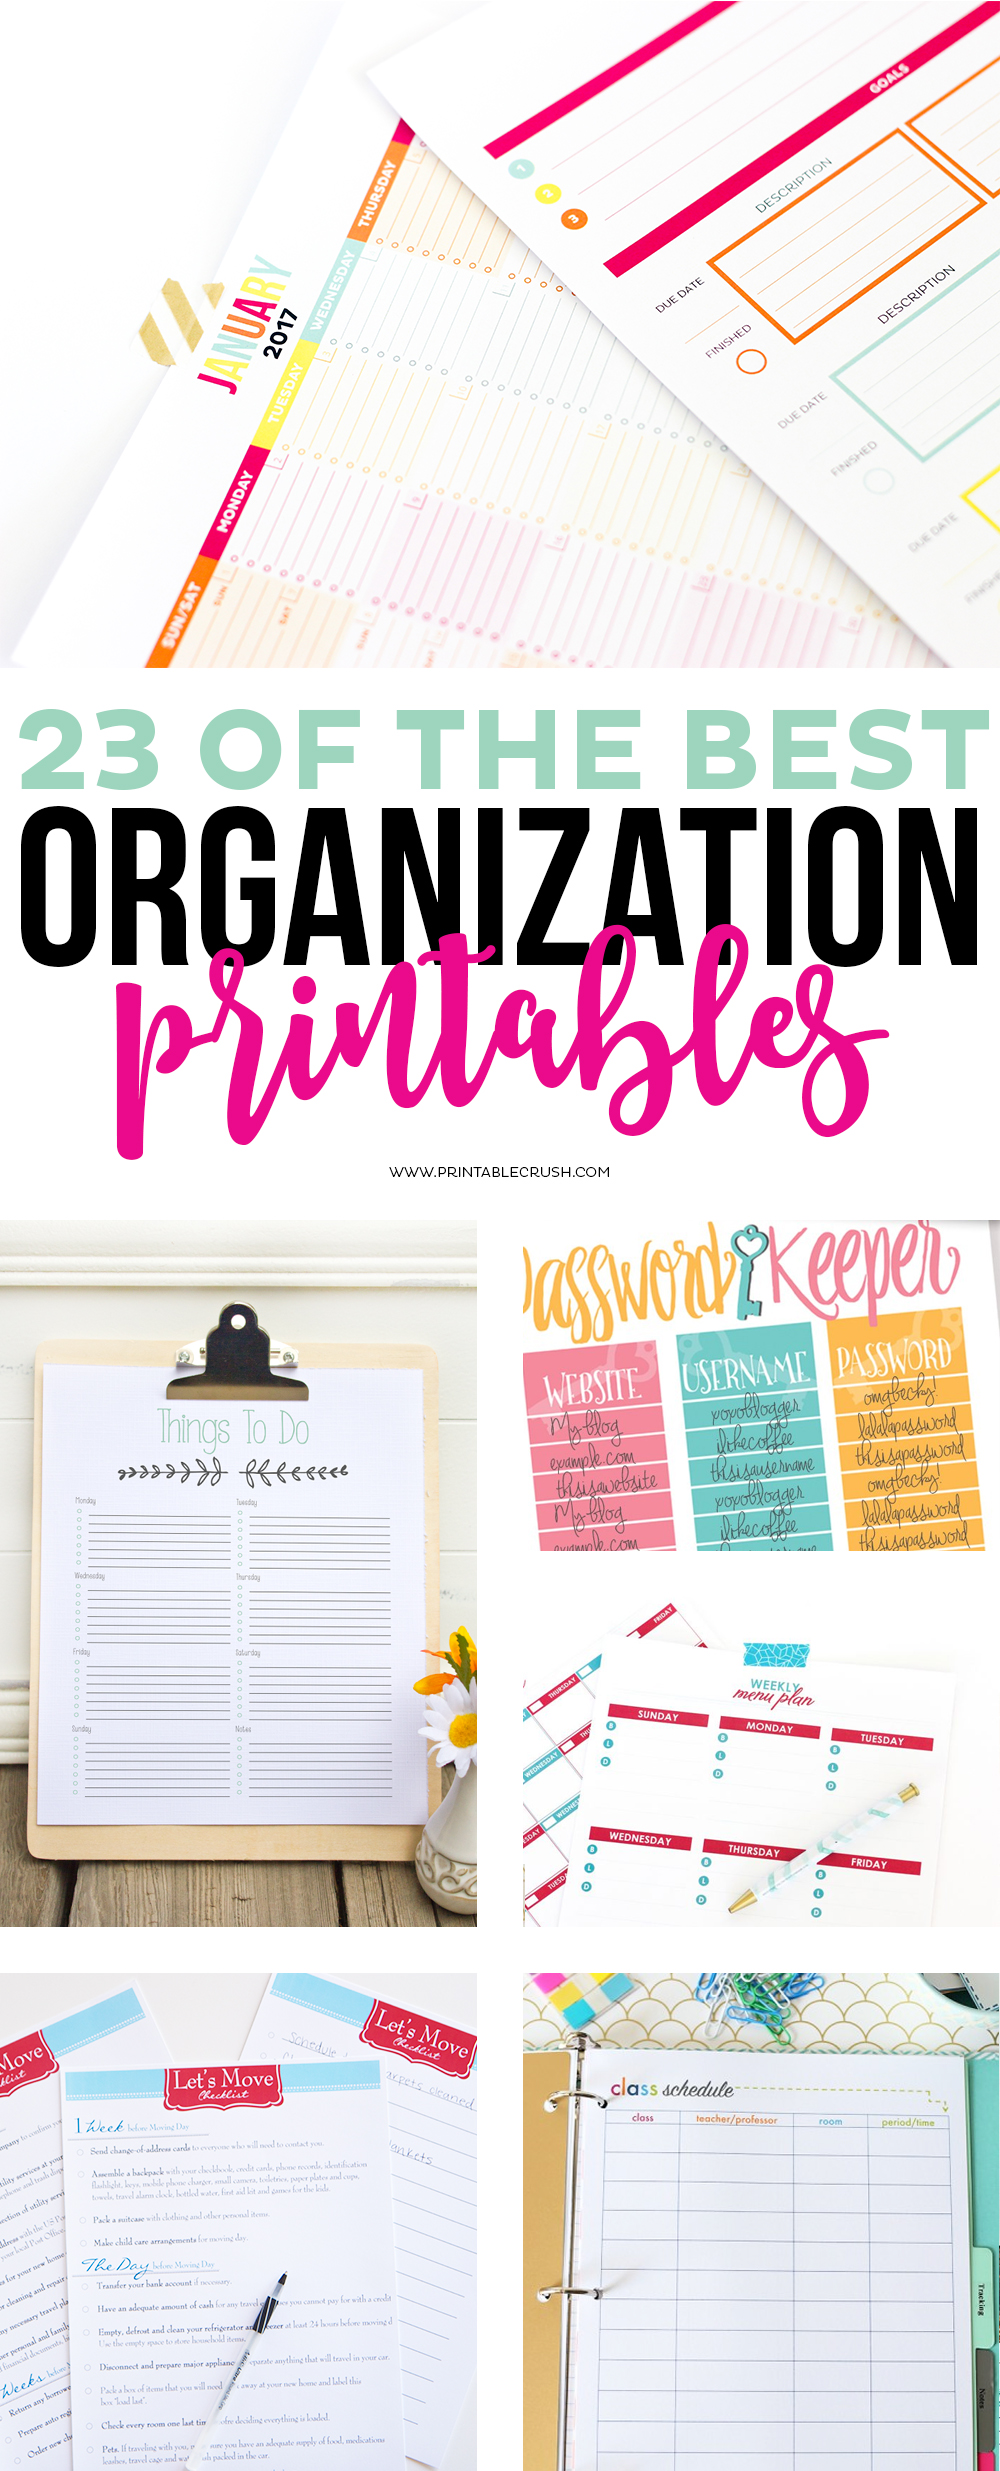 Calendar And Organization : Of the best organization printables printable crush